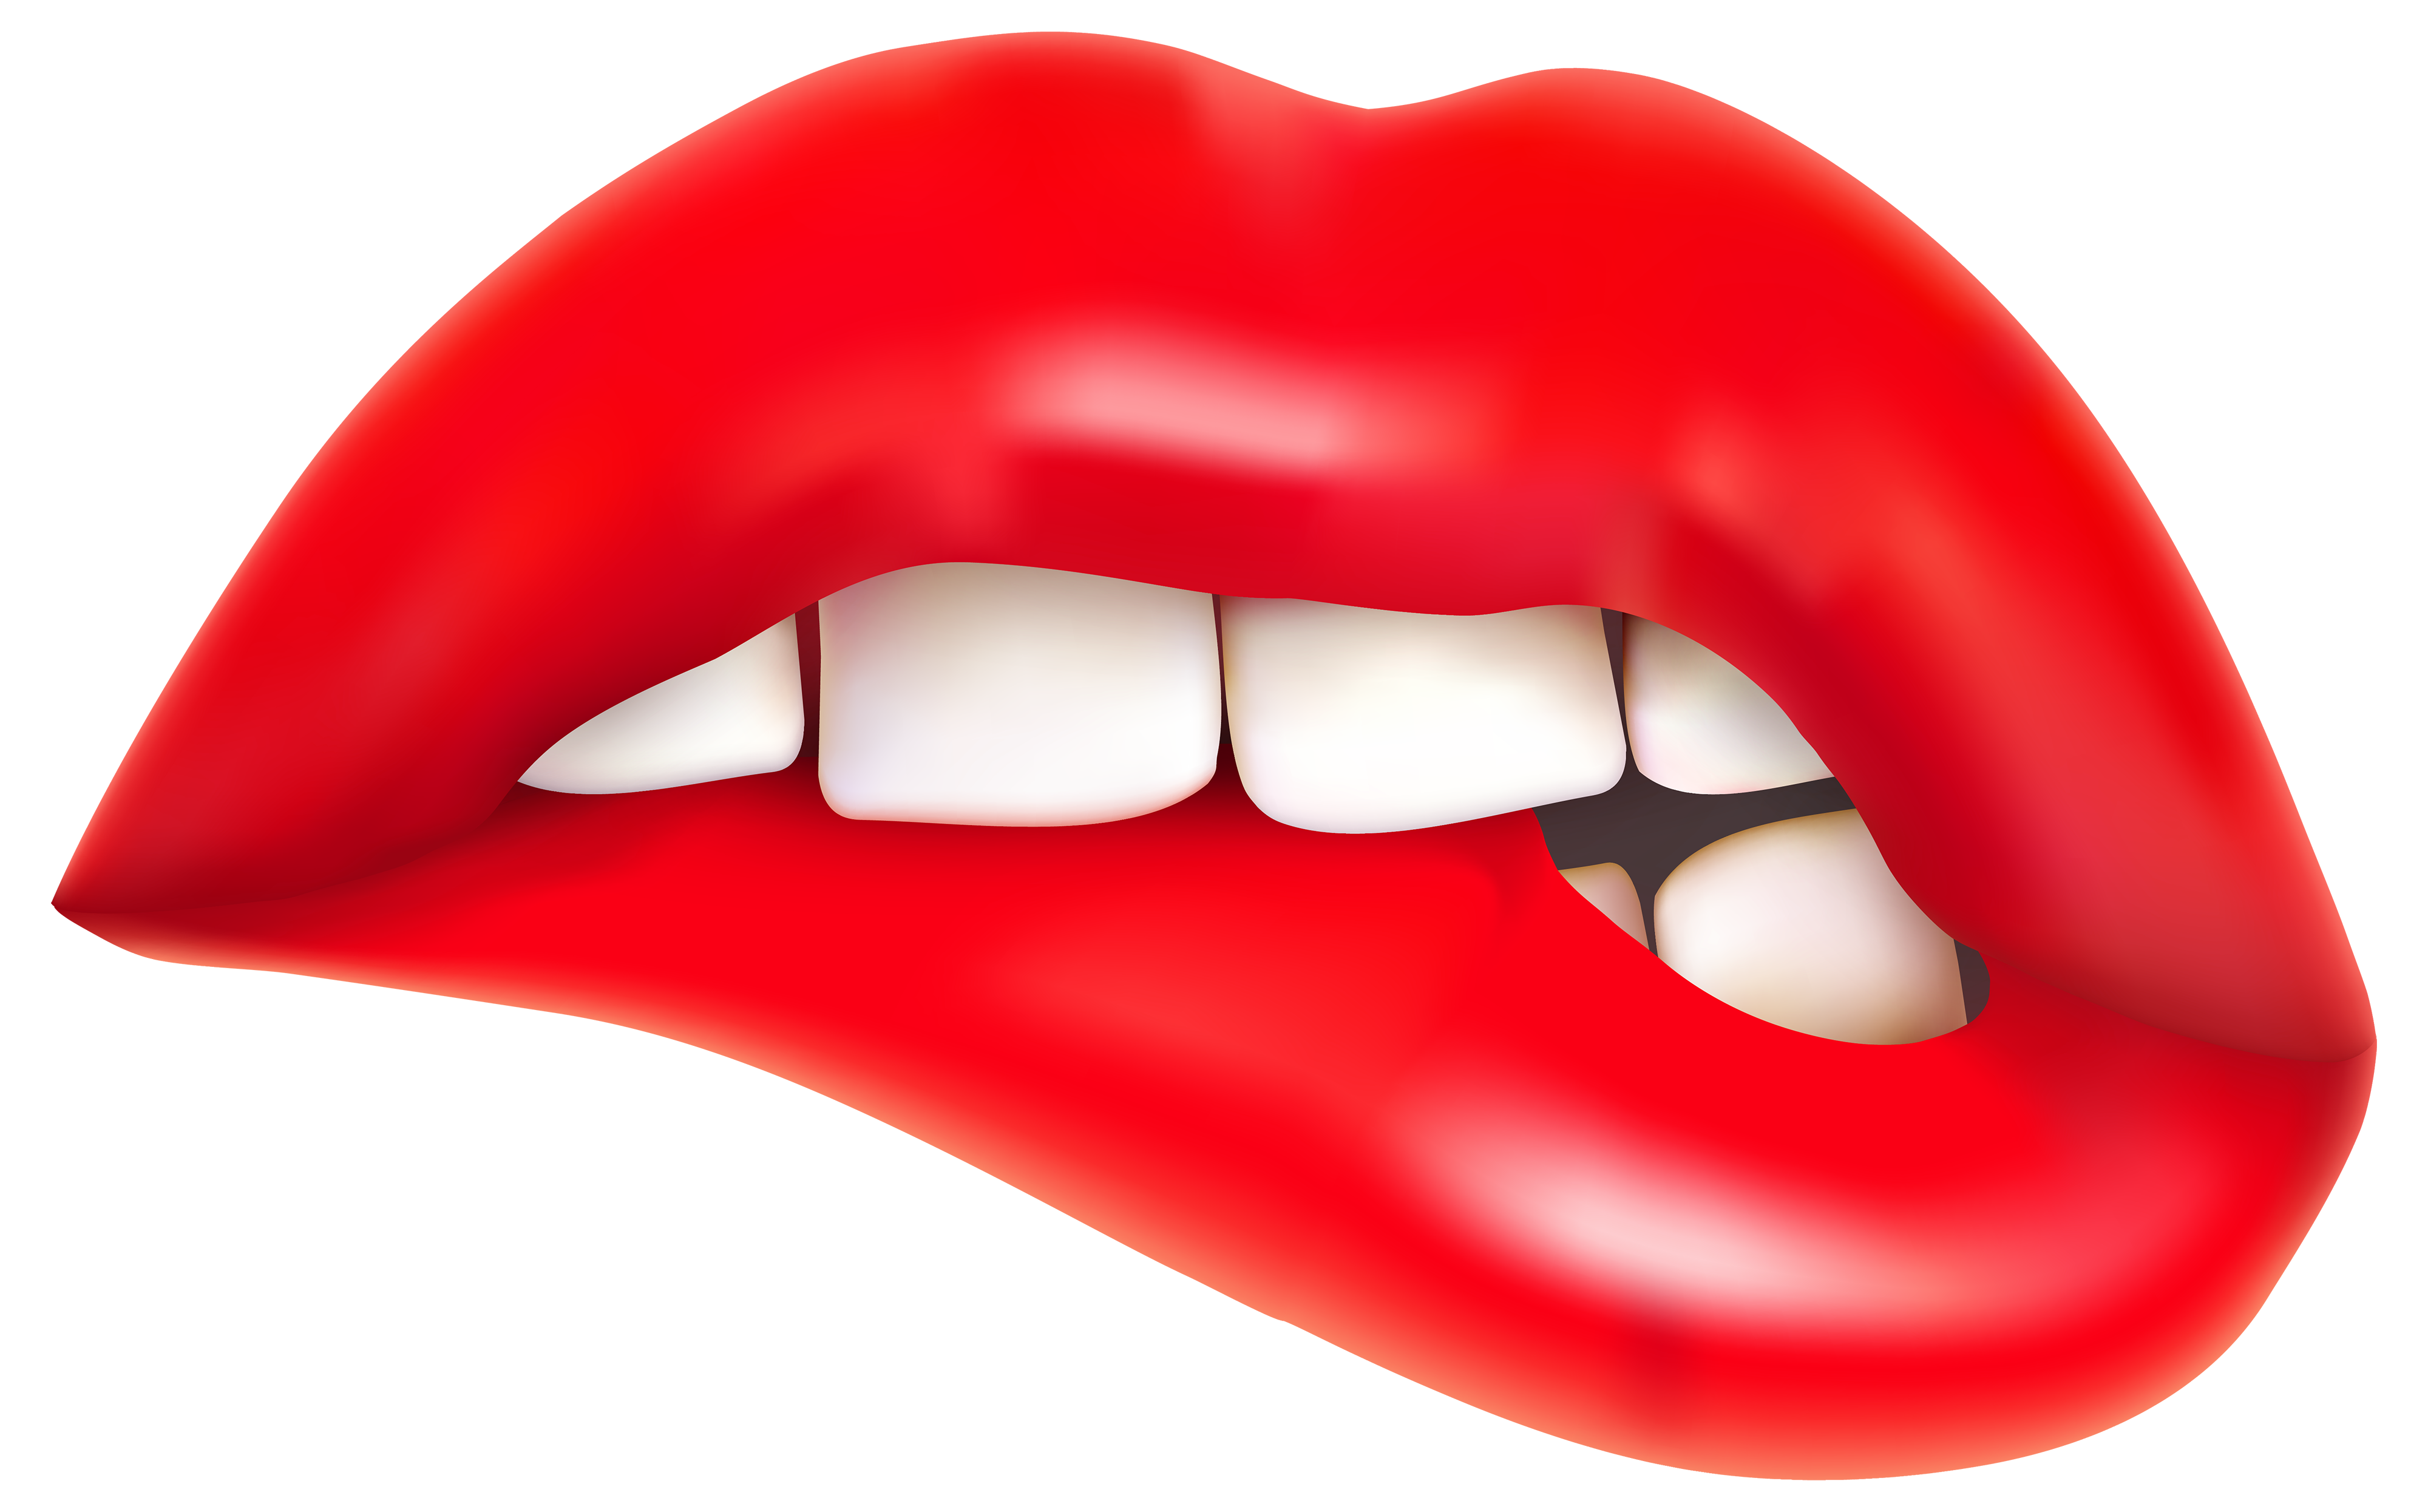 Smile Lips Clipart Free Clipart Images 5 - Smile Lips, Transparent background PNG HD thumbnail